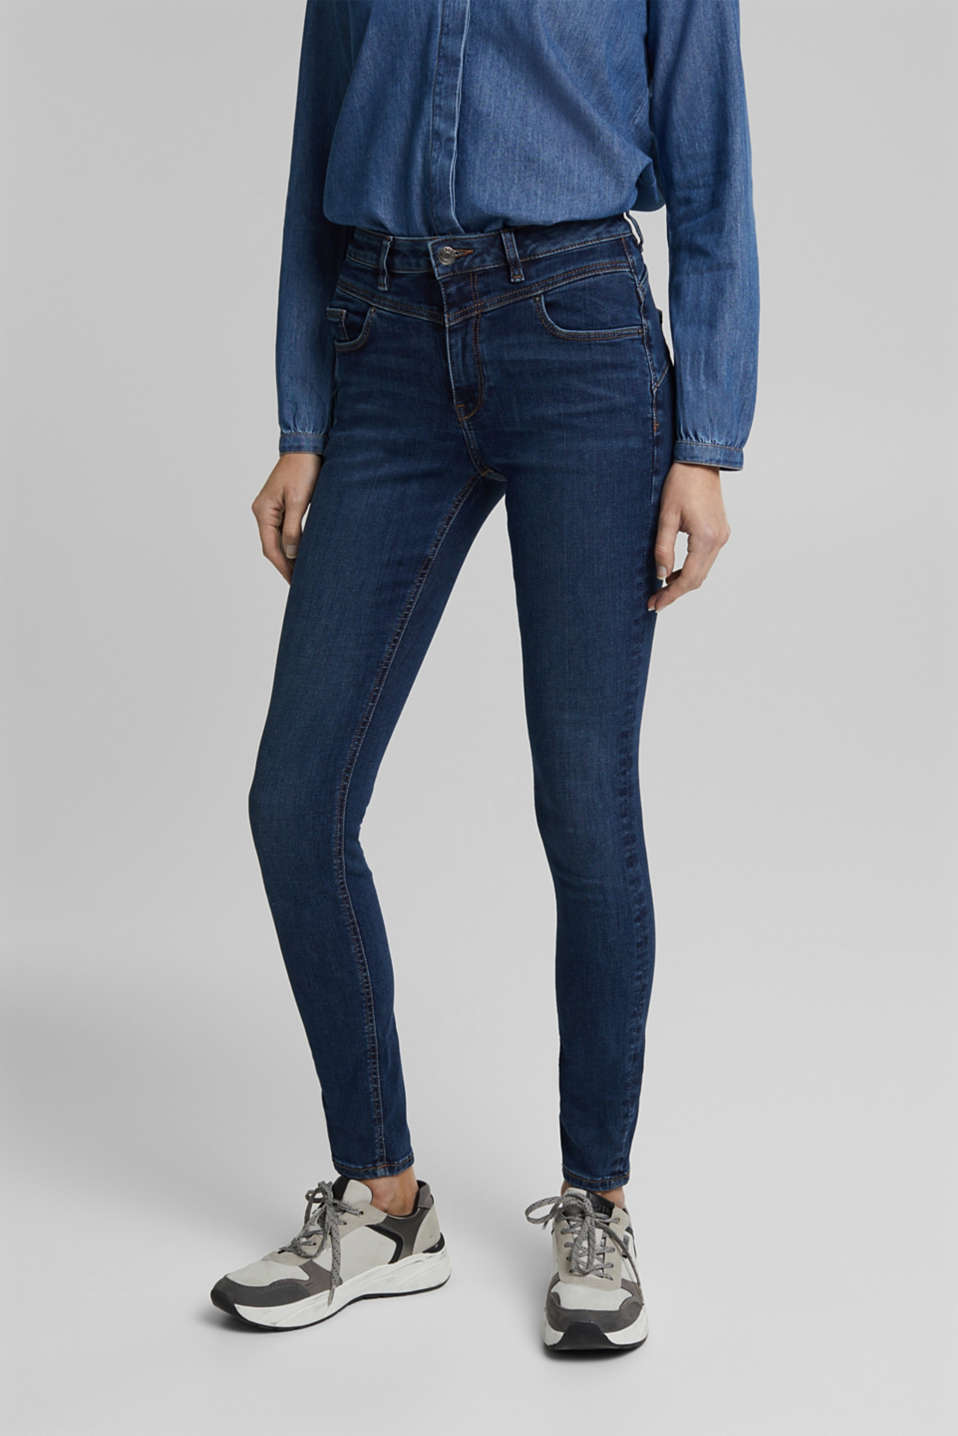 Esprit - Recycled: Shaping jeans made of organic cotton